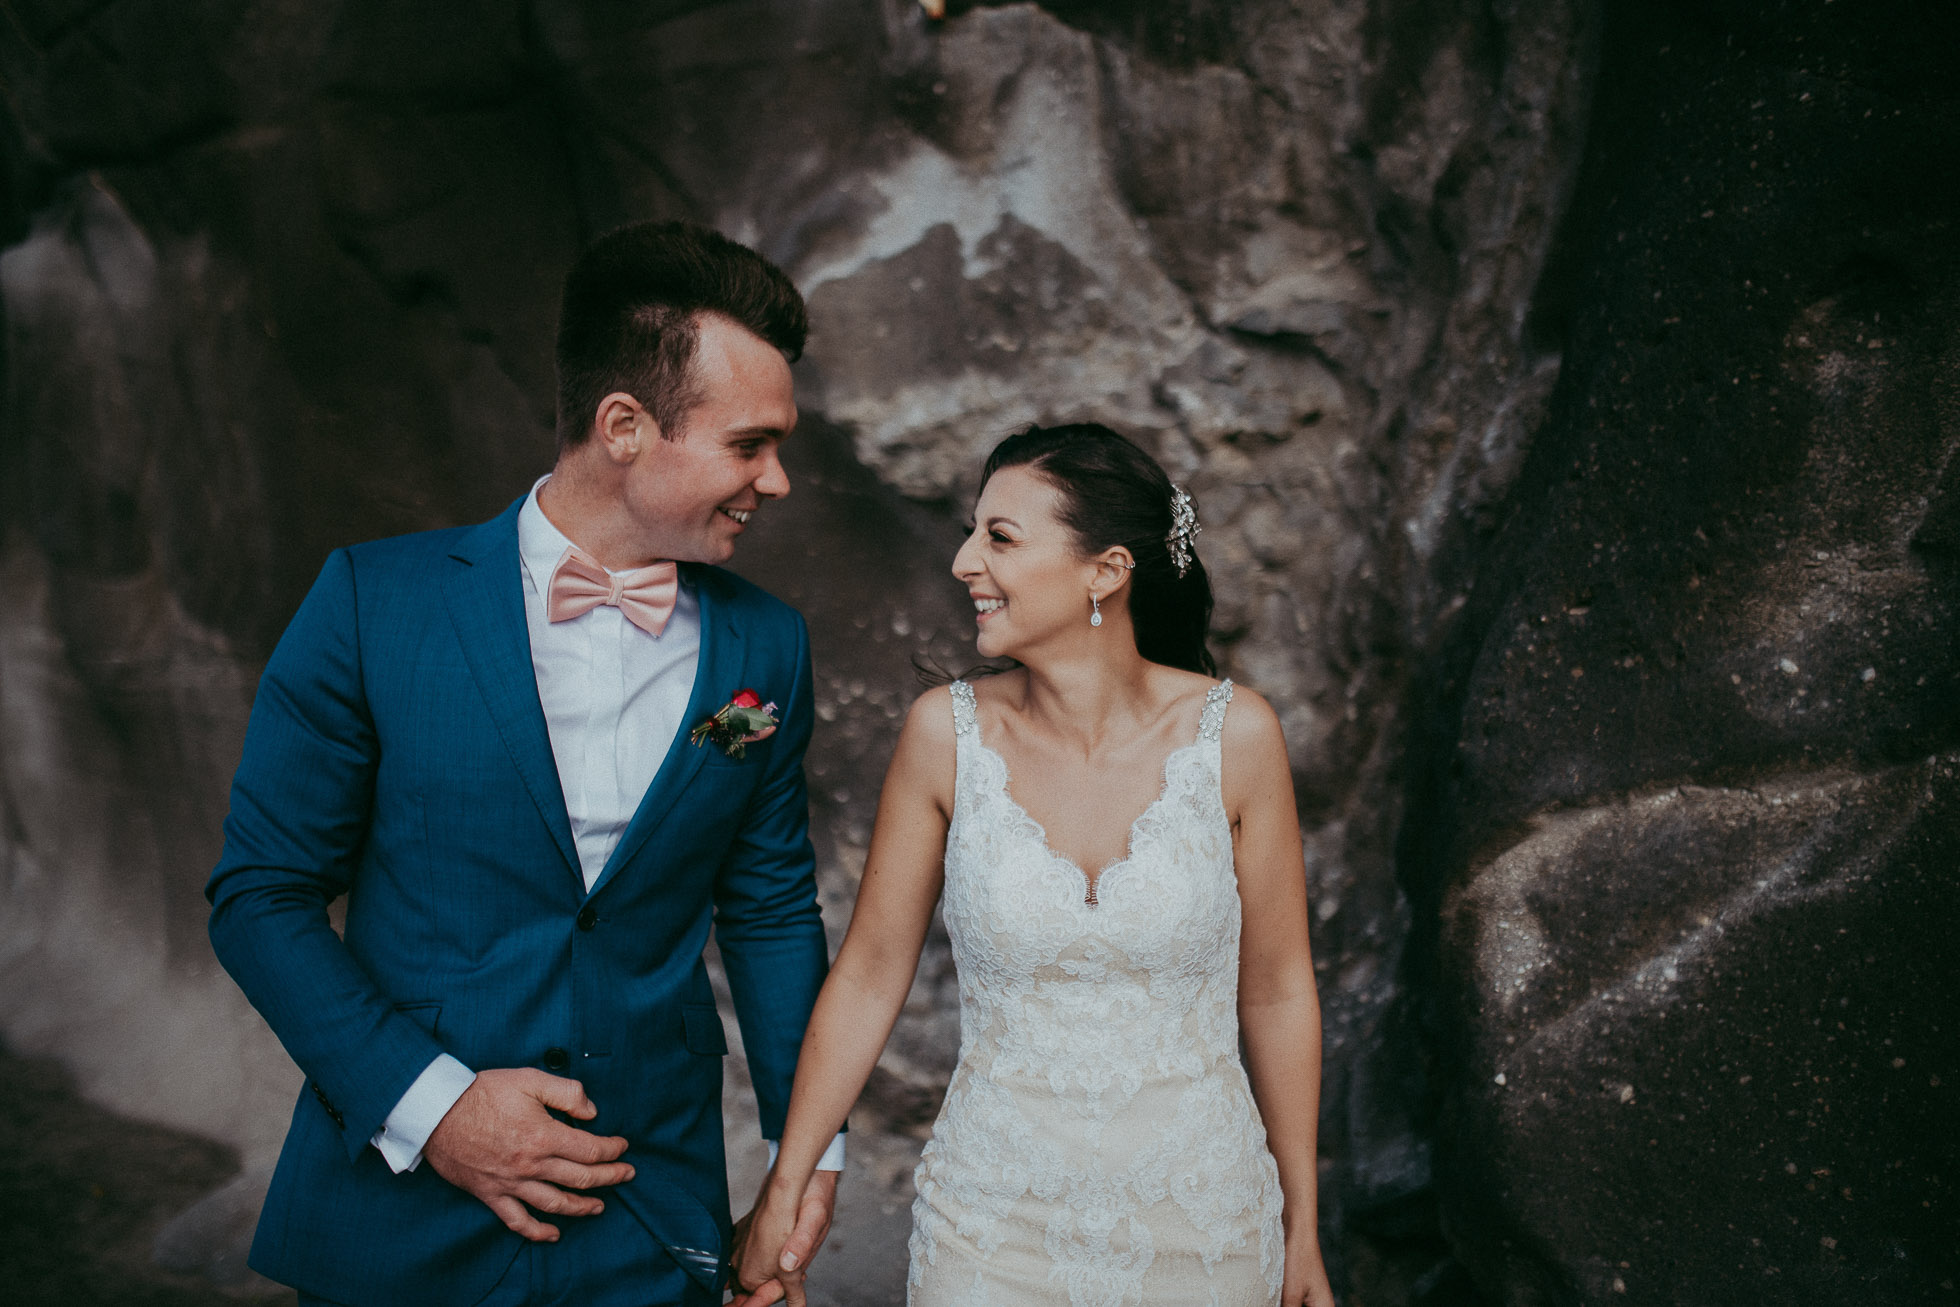 Muriwai Beach - wedding photography